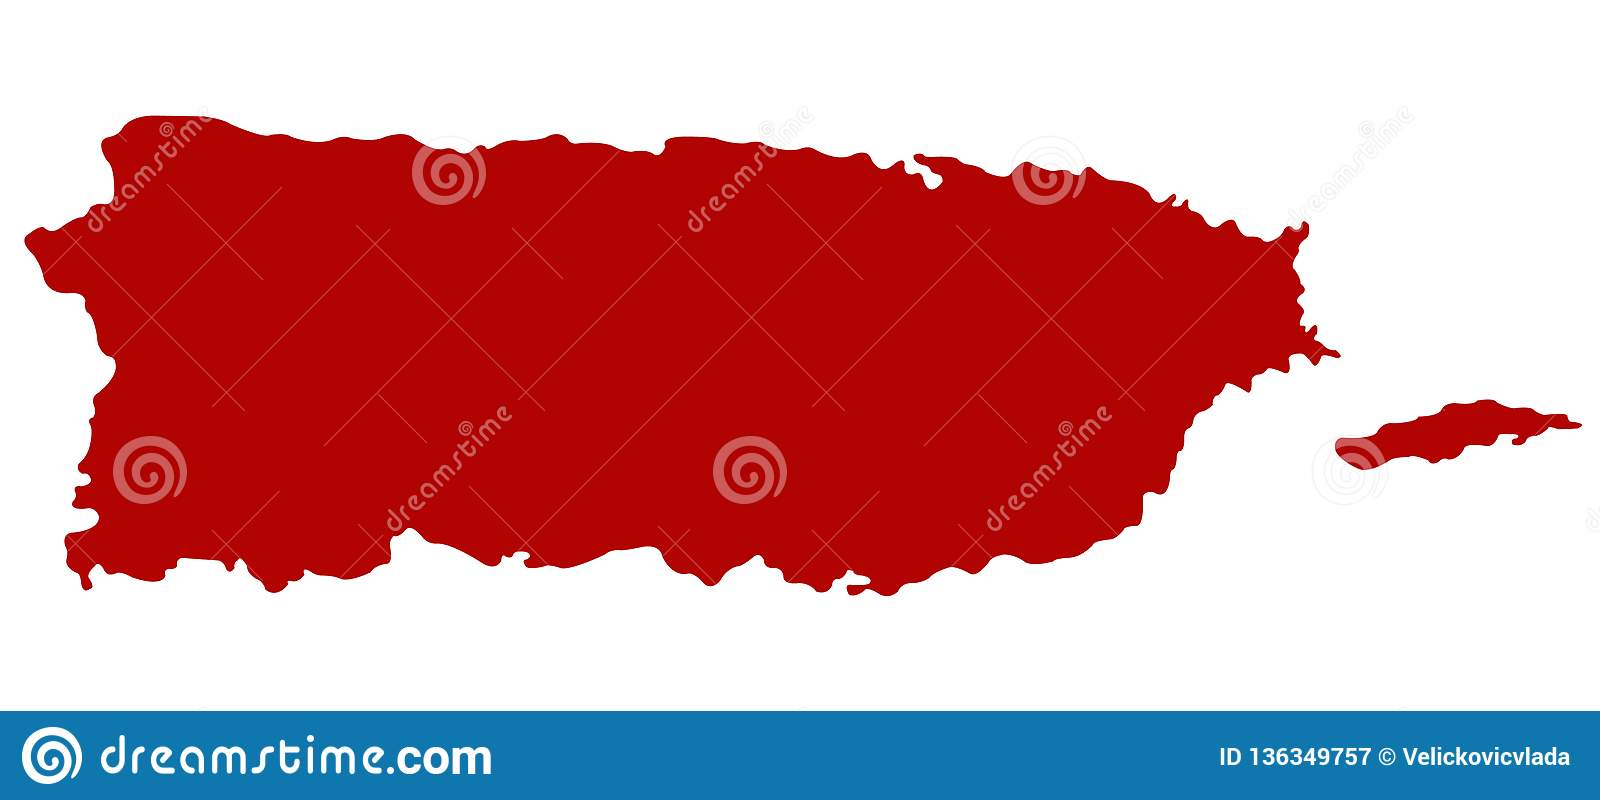 United States Map With Puerto Rico.Puerto Rico Map Commonwealth Of Puerto Rico Stock Vector